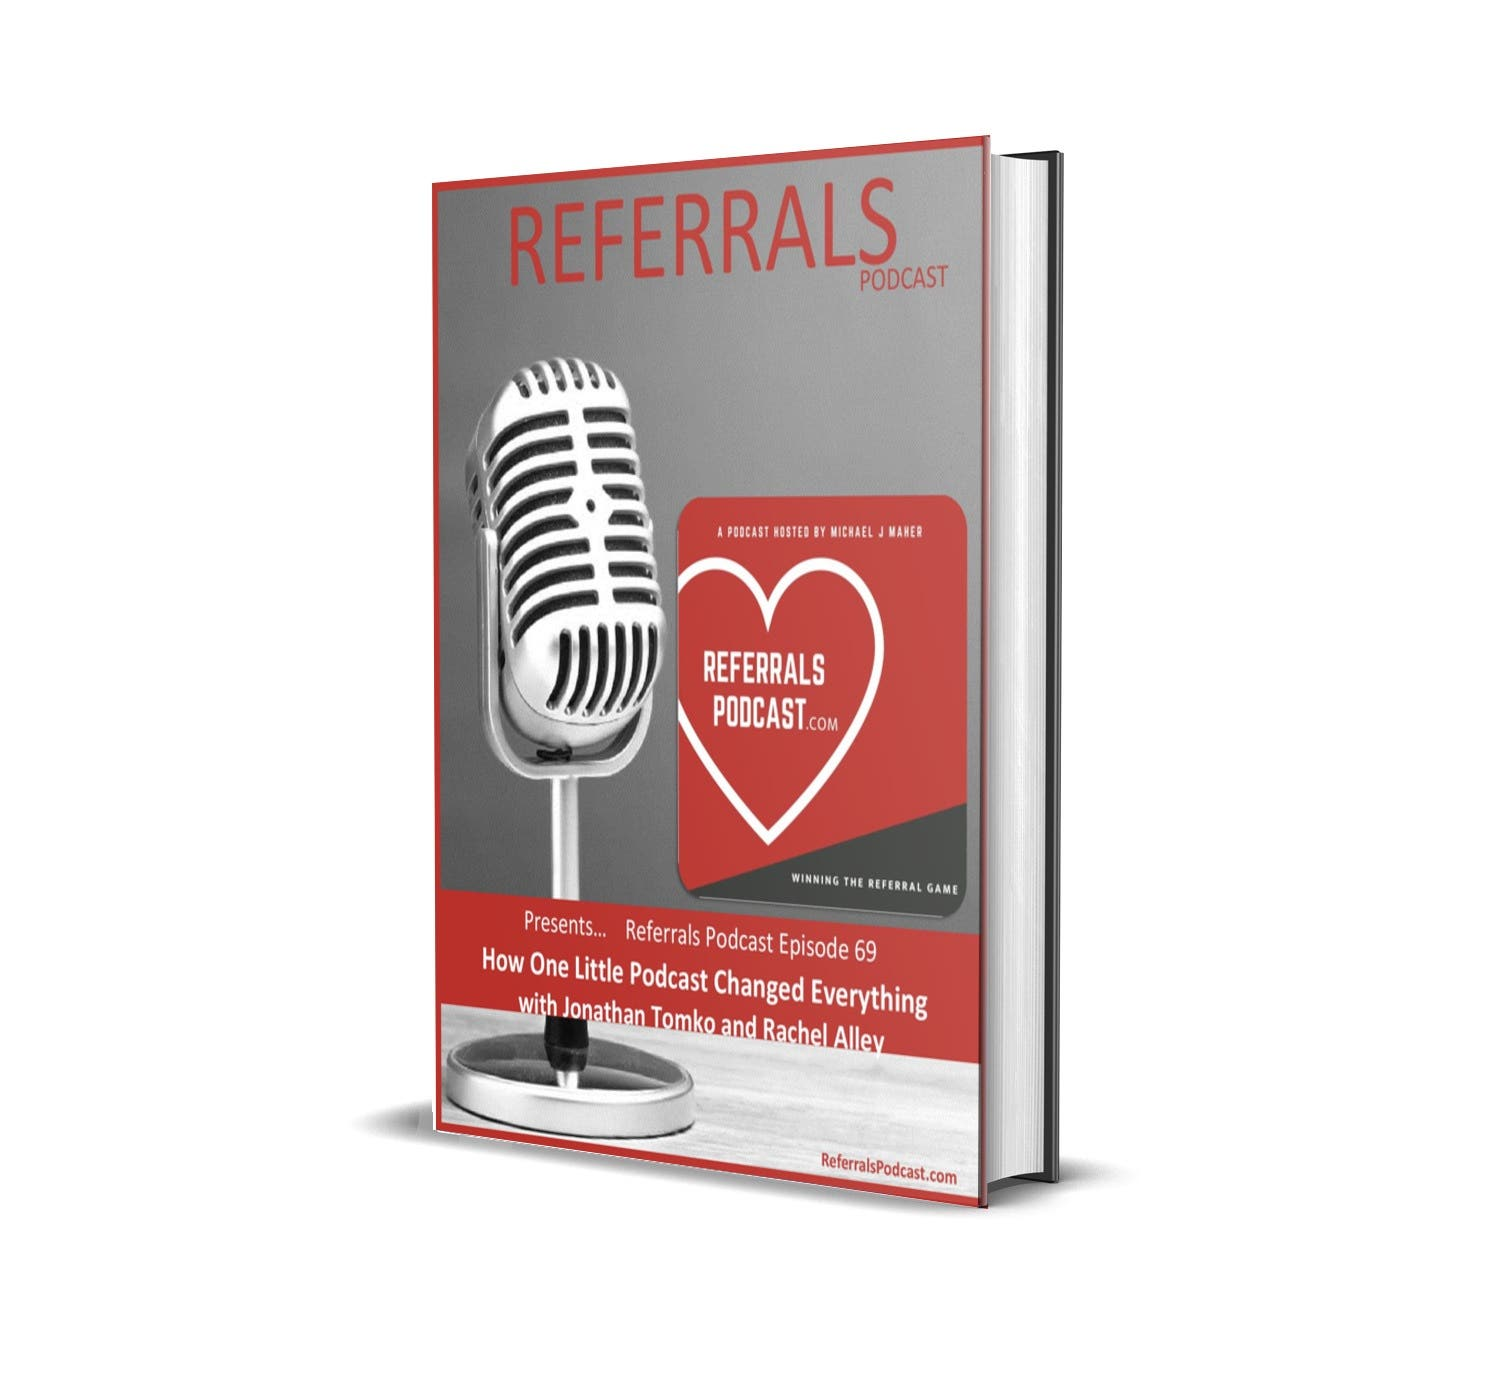 Referrals Podcast - Episode 69 - How One Little Podcast Changed Everything